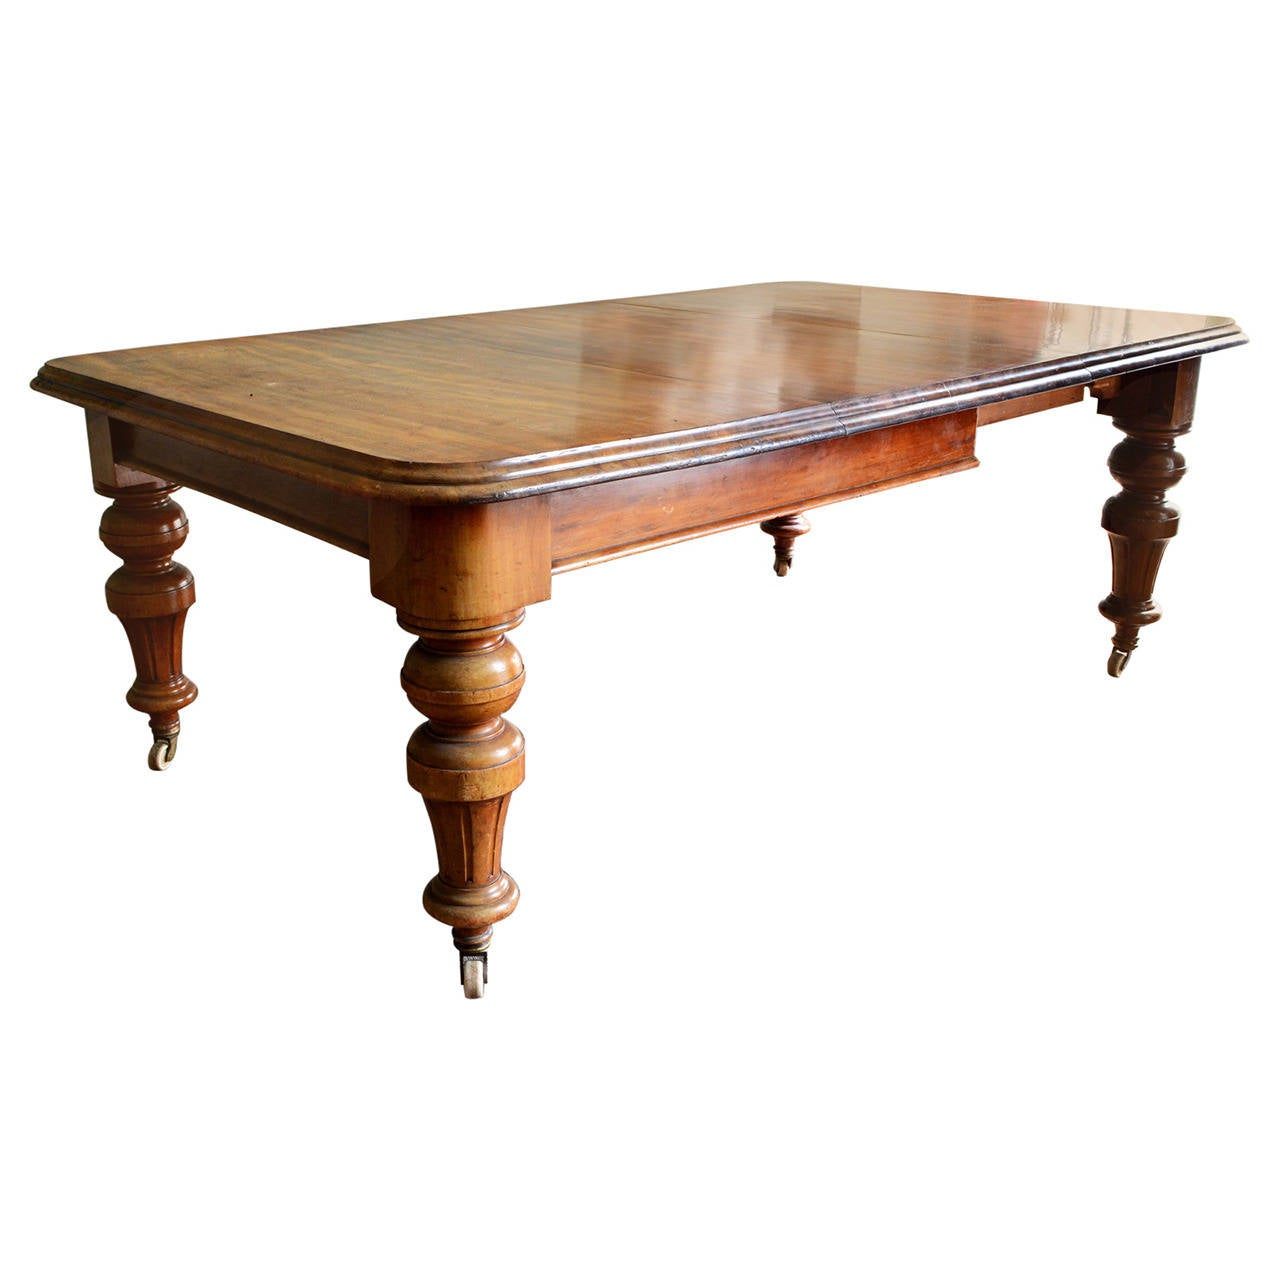 Victorian Dining Room Table: Victorian Dining Table At 1stdibs